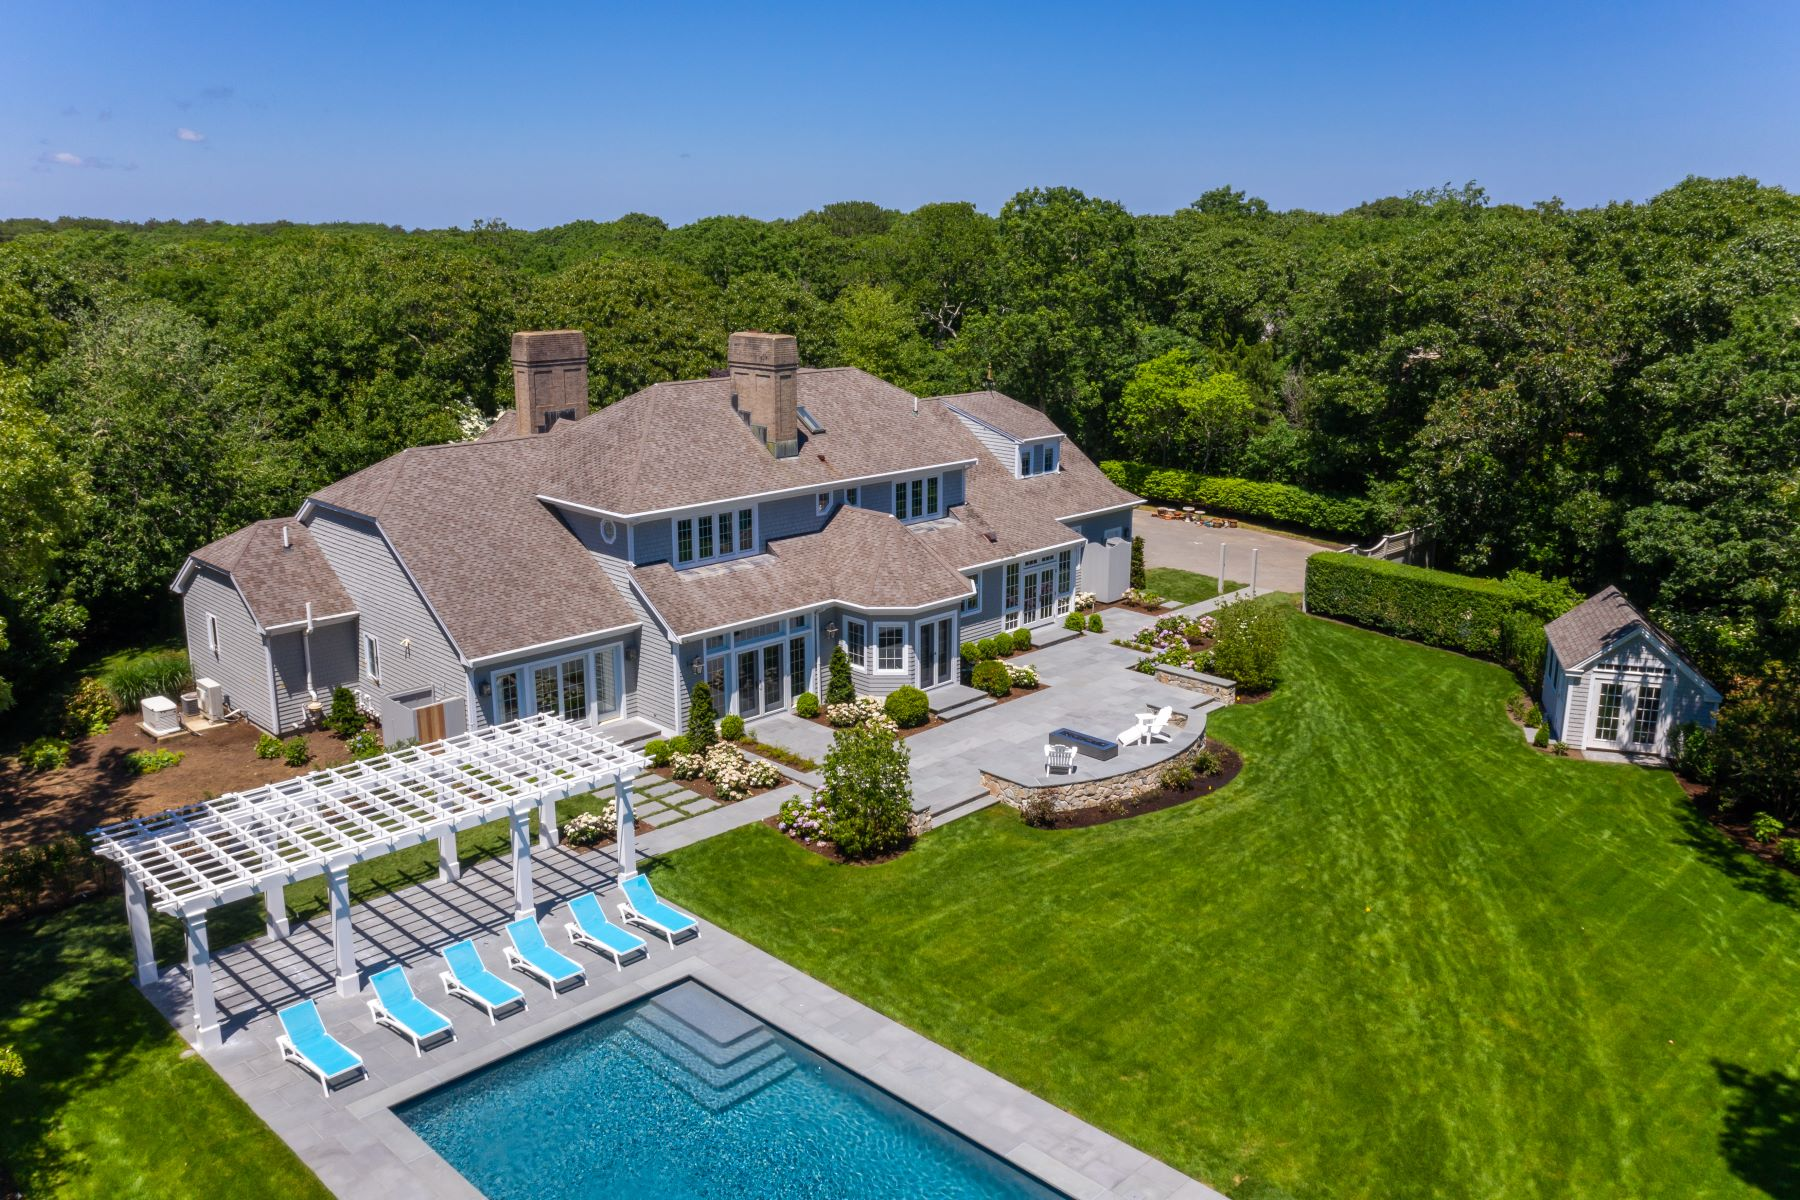 Single Family Homes for Active at Stunning Coastal Home with Deepwater Dock 37 Witchwood Lane Edgartown, Massachusetts 02539 United States